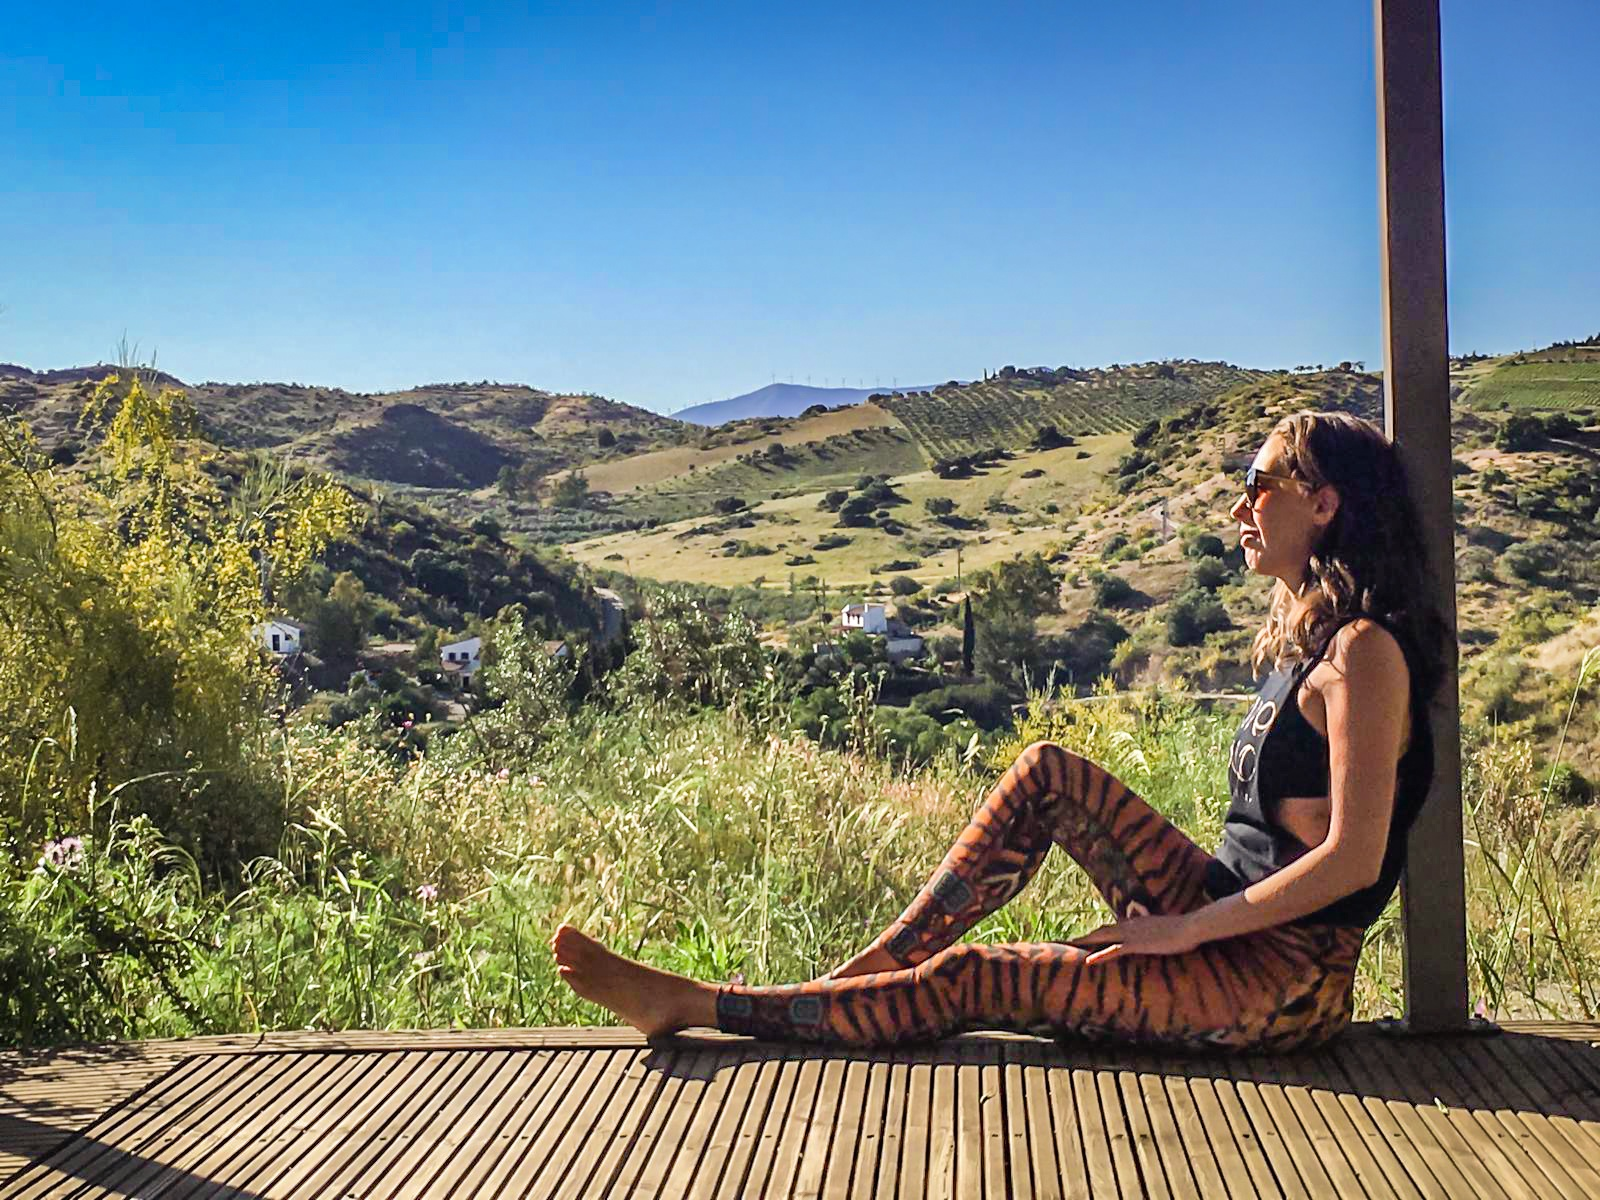 The Fit Traveller - By Annie Scott